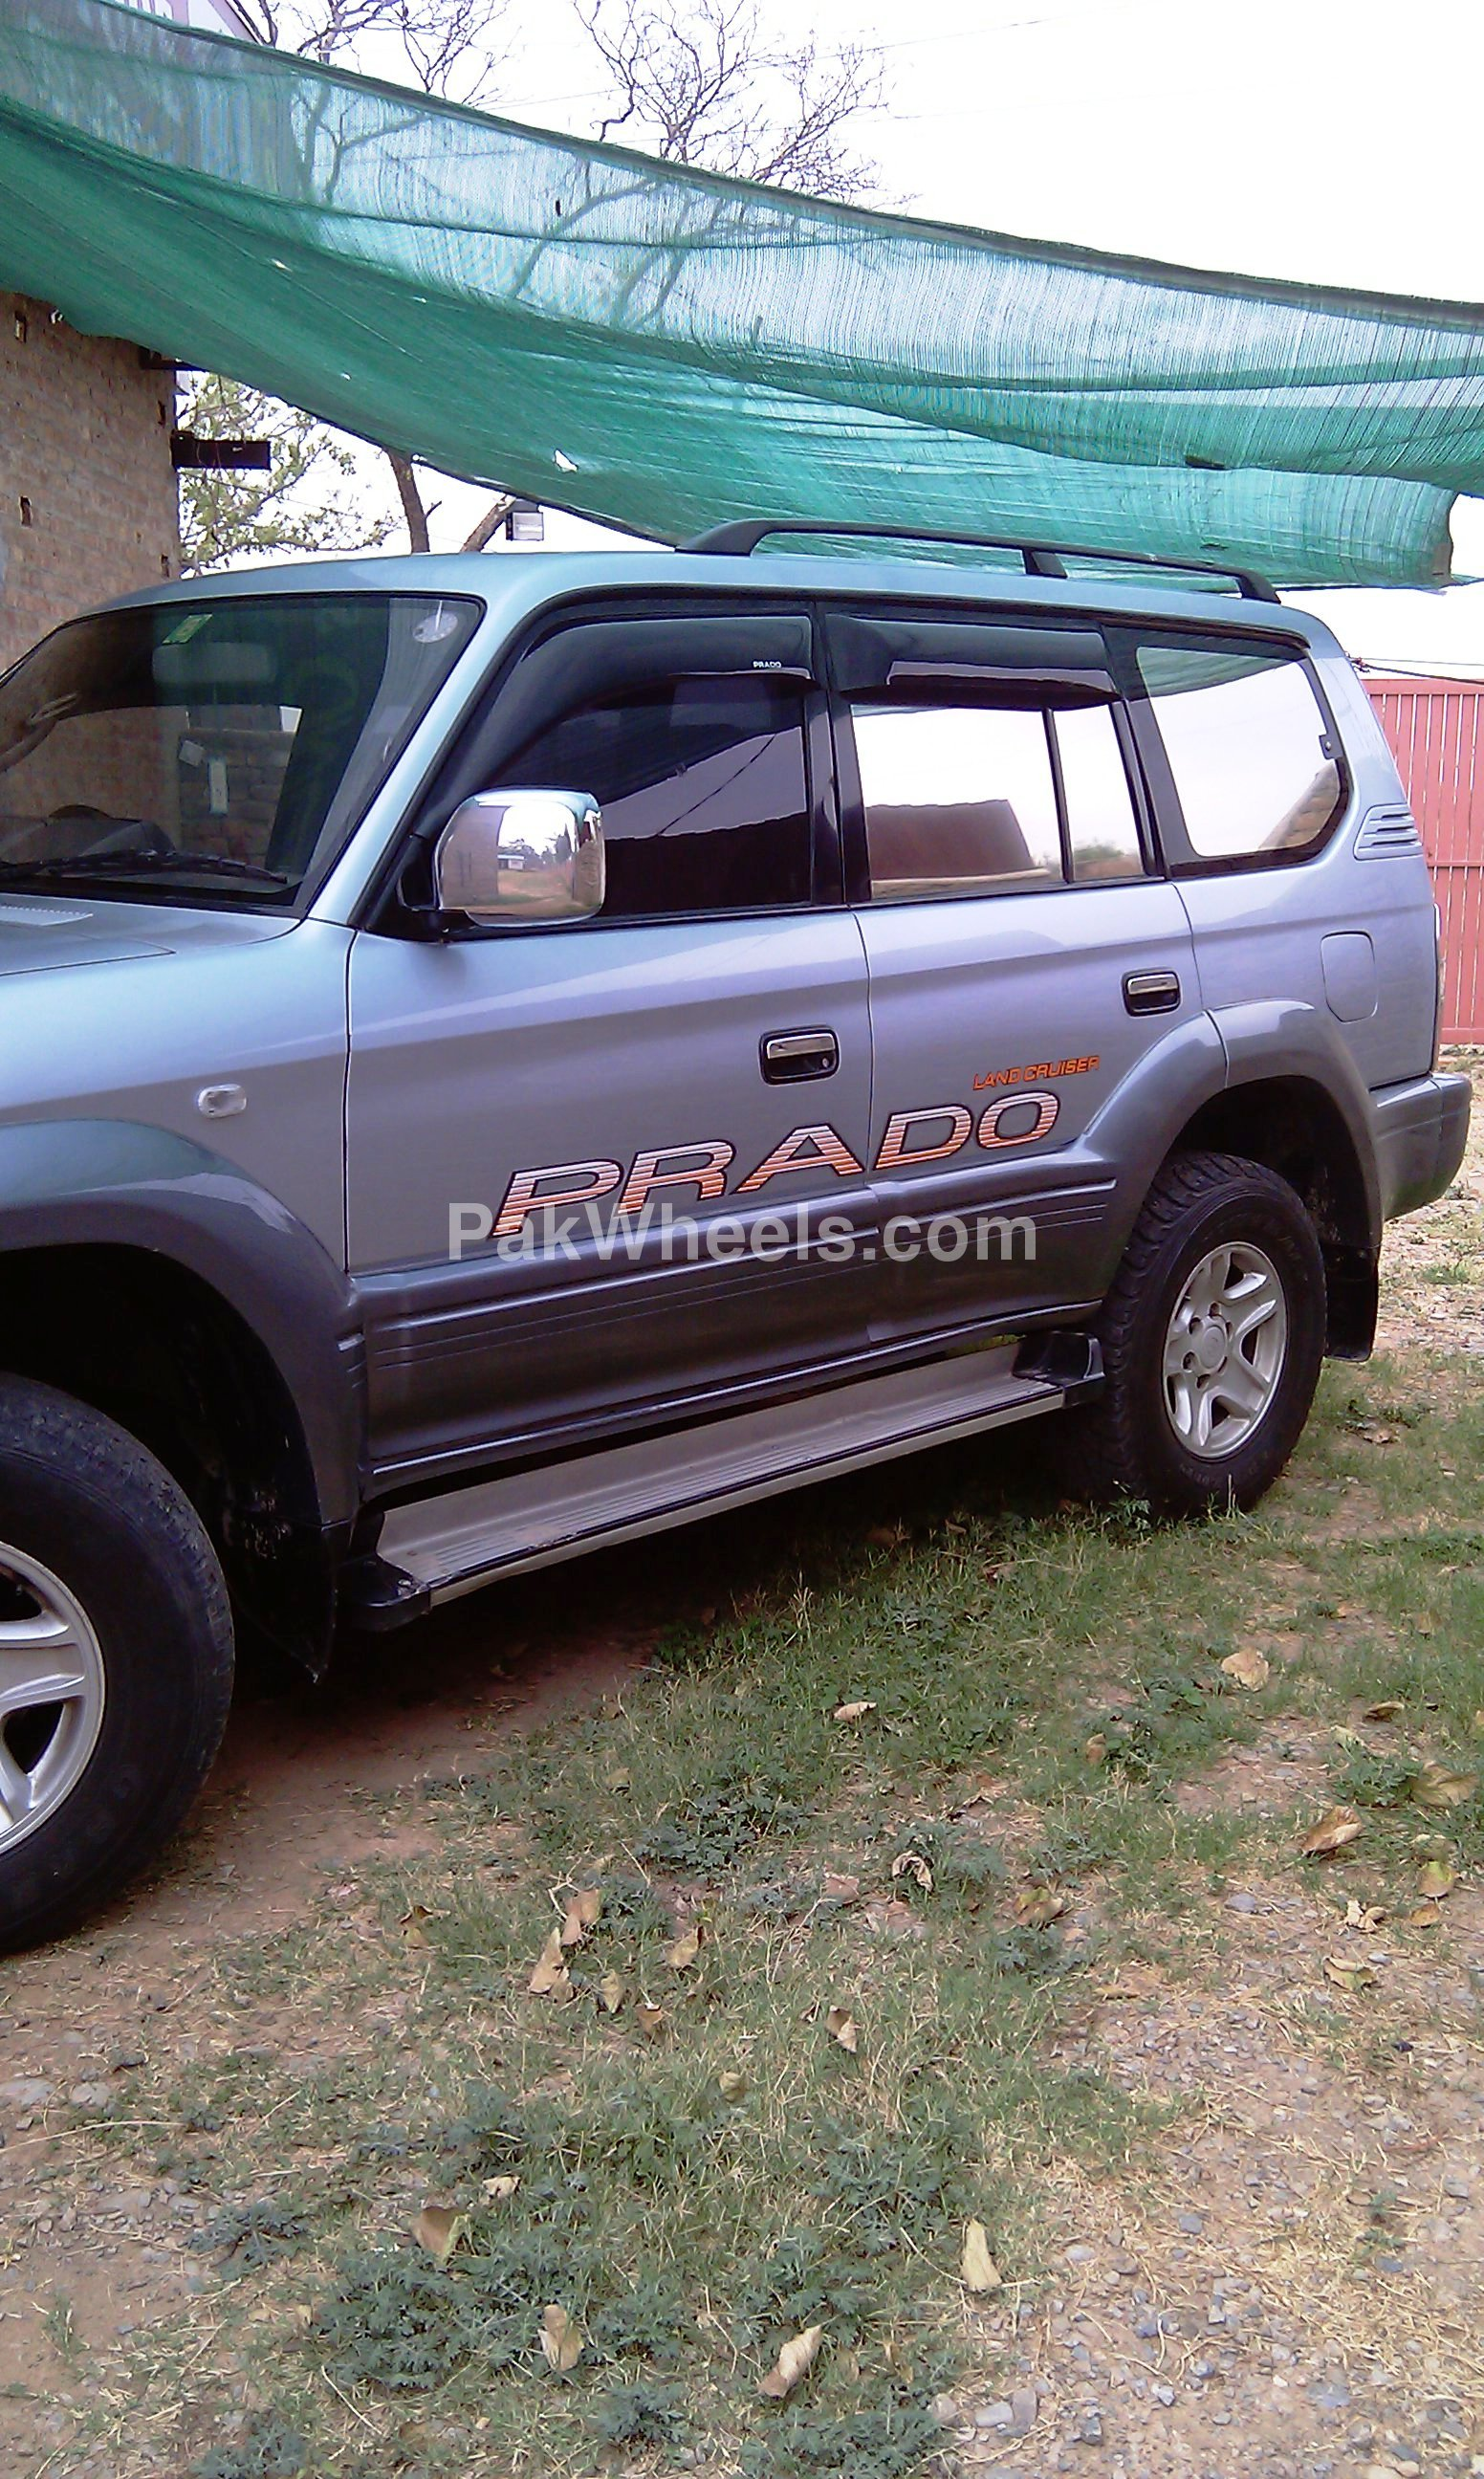 Used Toyota Land Cruiser Prado 3.0 N-turbo 1996 Car for sale in Islamabad - 242299 - 535262